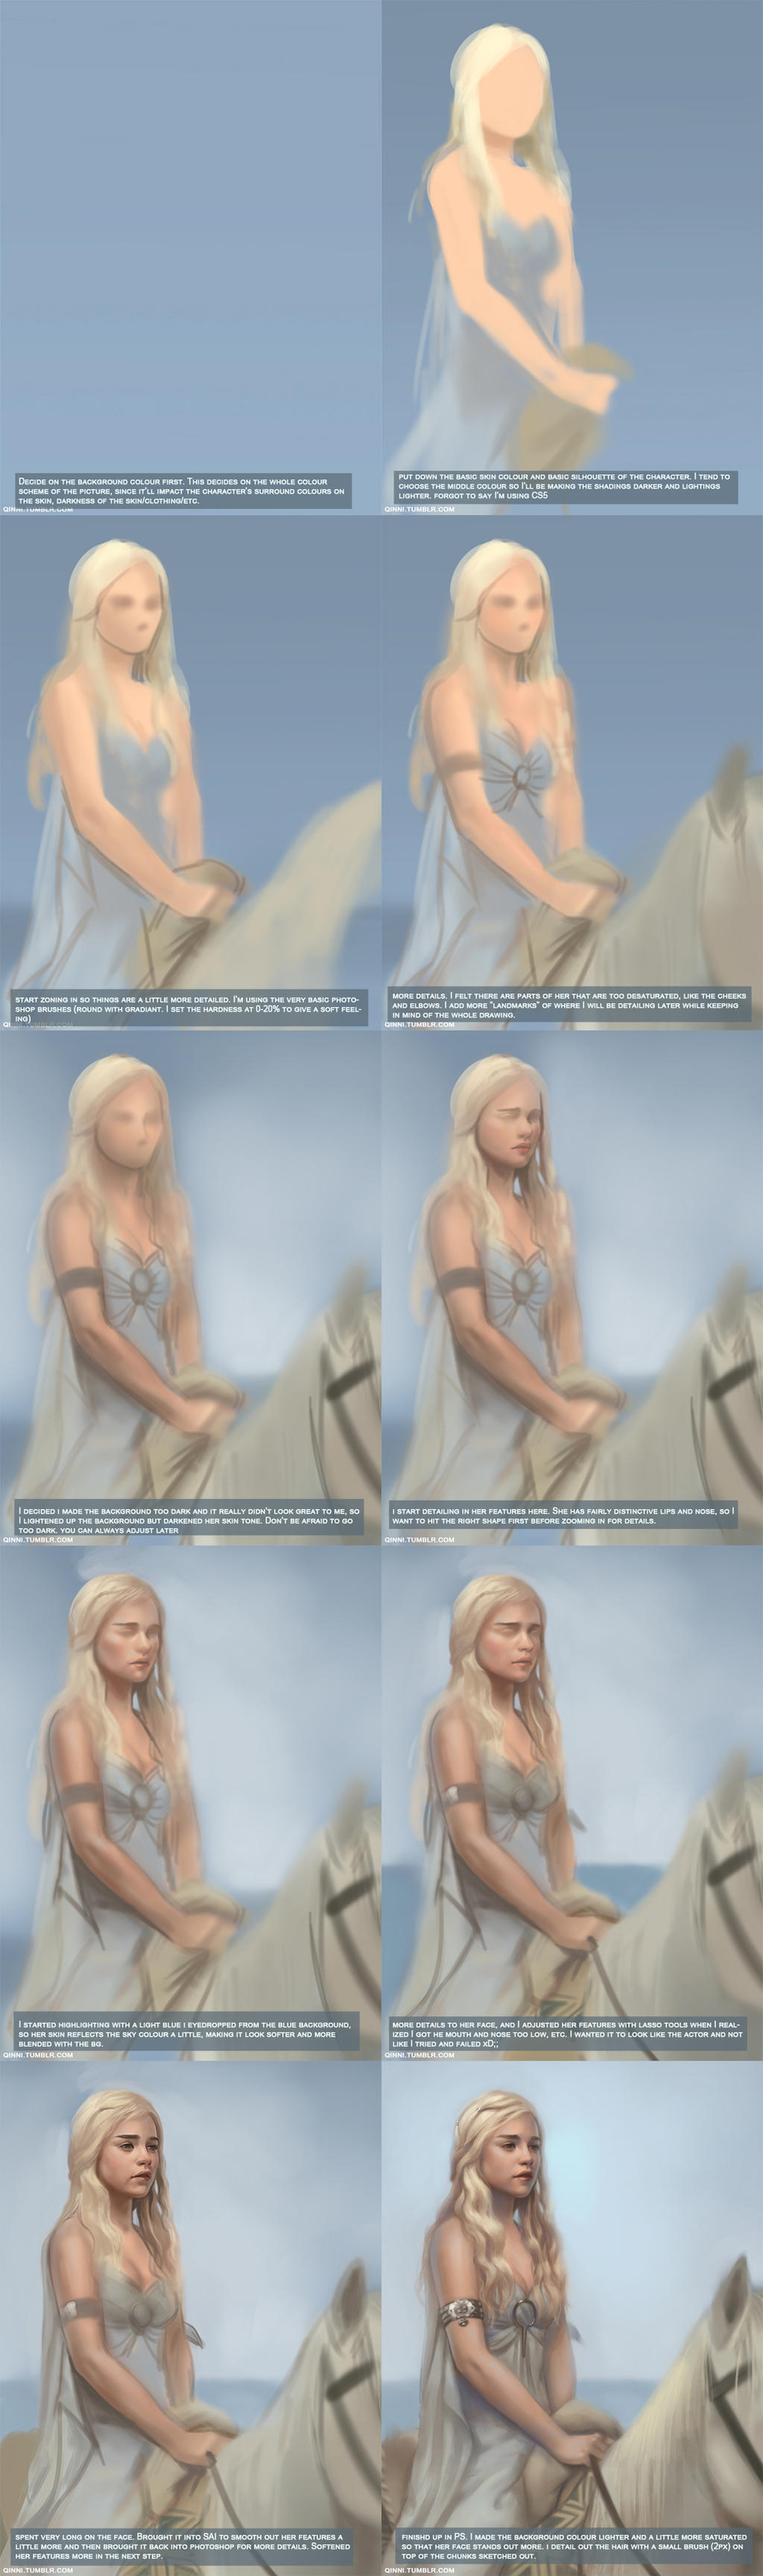 Daenerys Walkthrough by Qinni